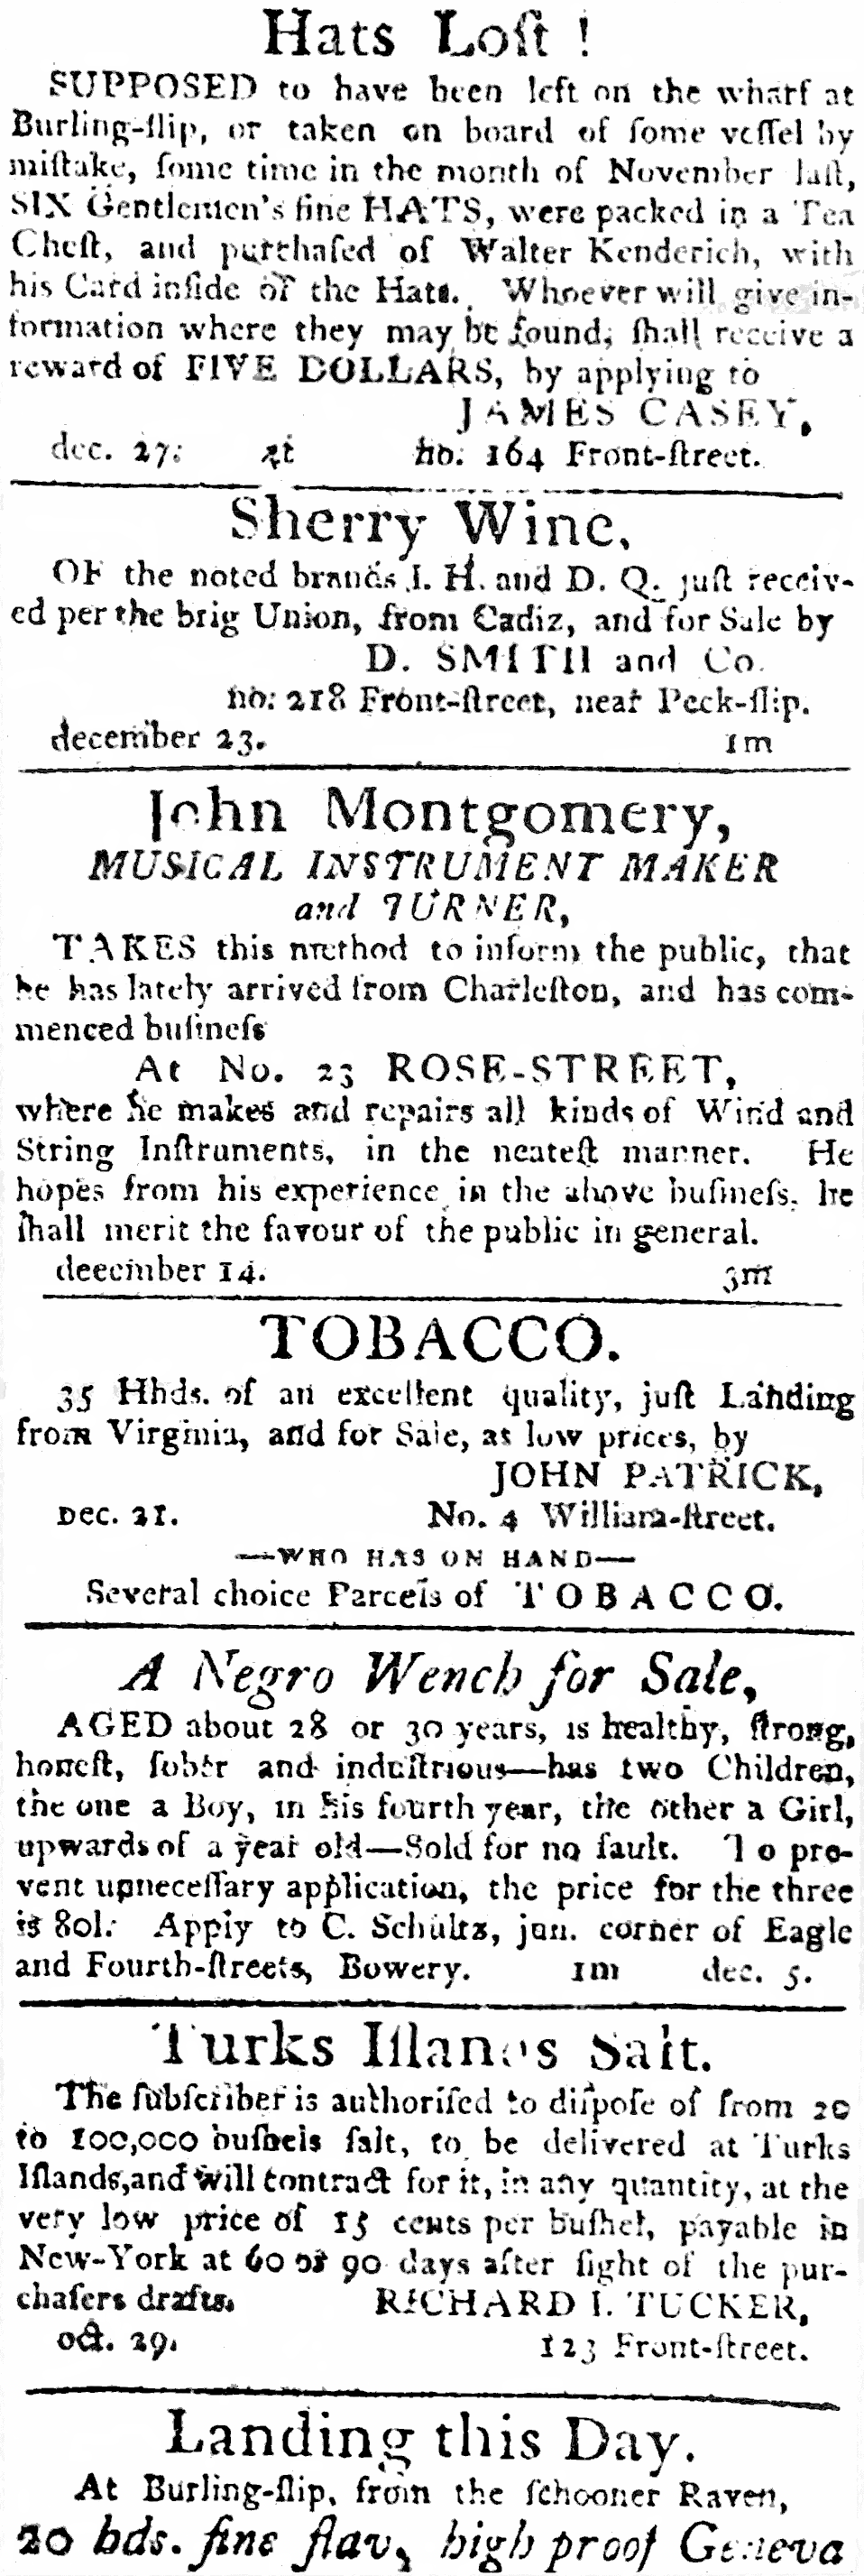 PSM V56 D0197 From the new york gazette and general advertiser 1800.png